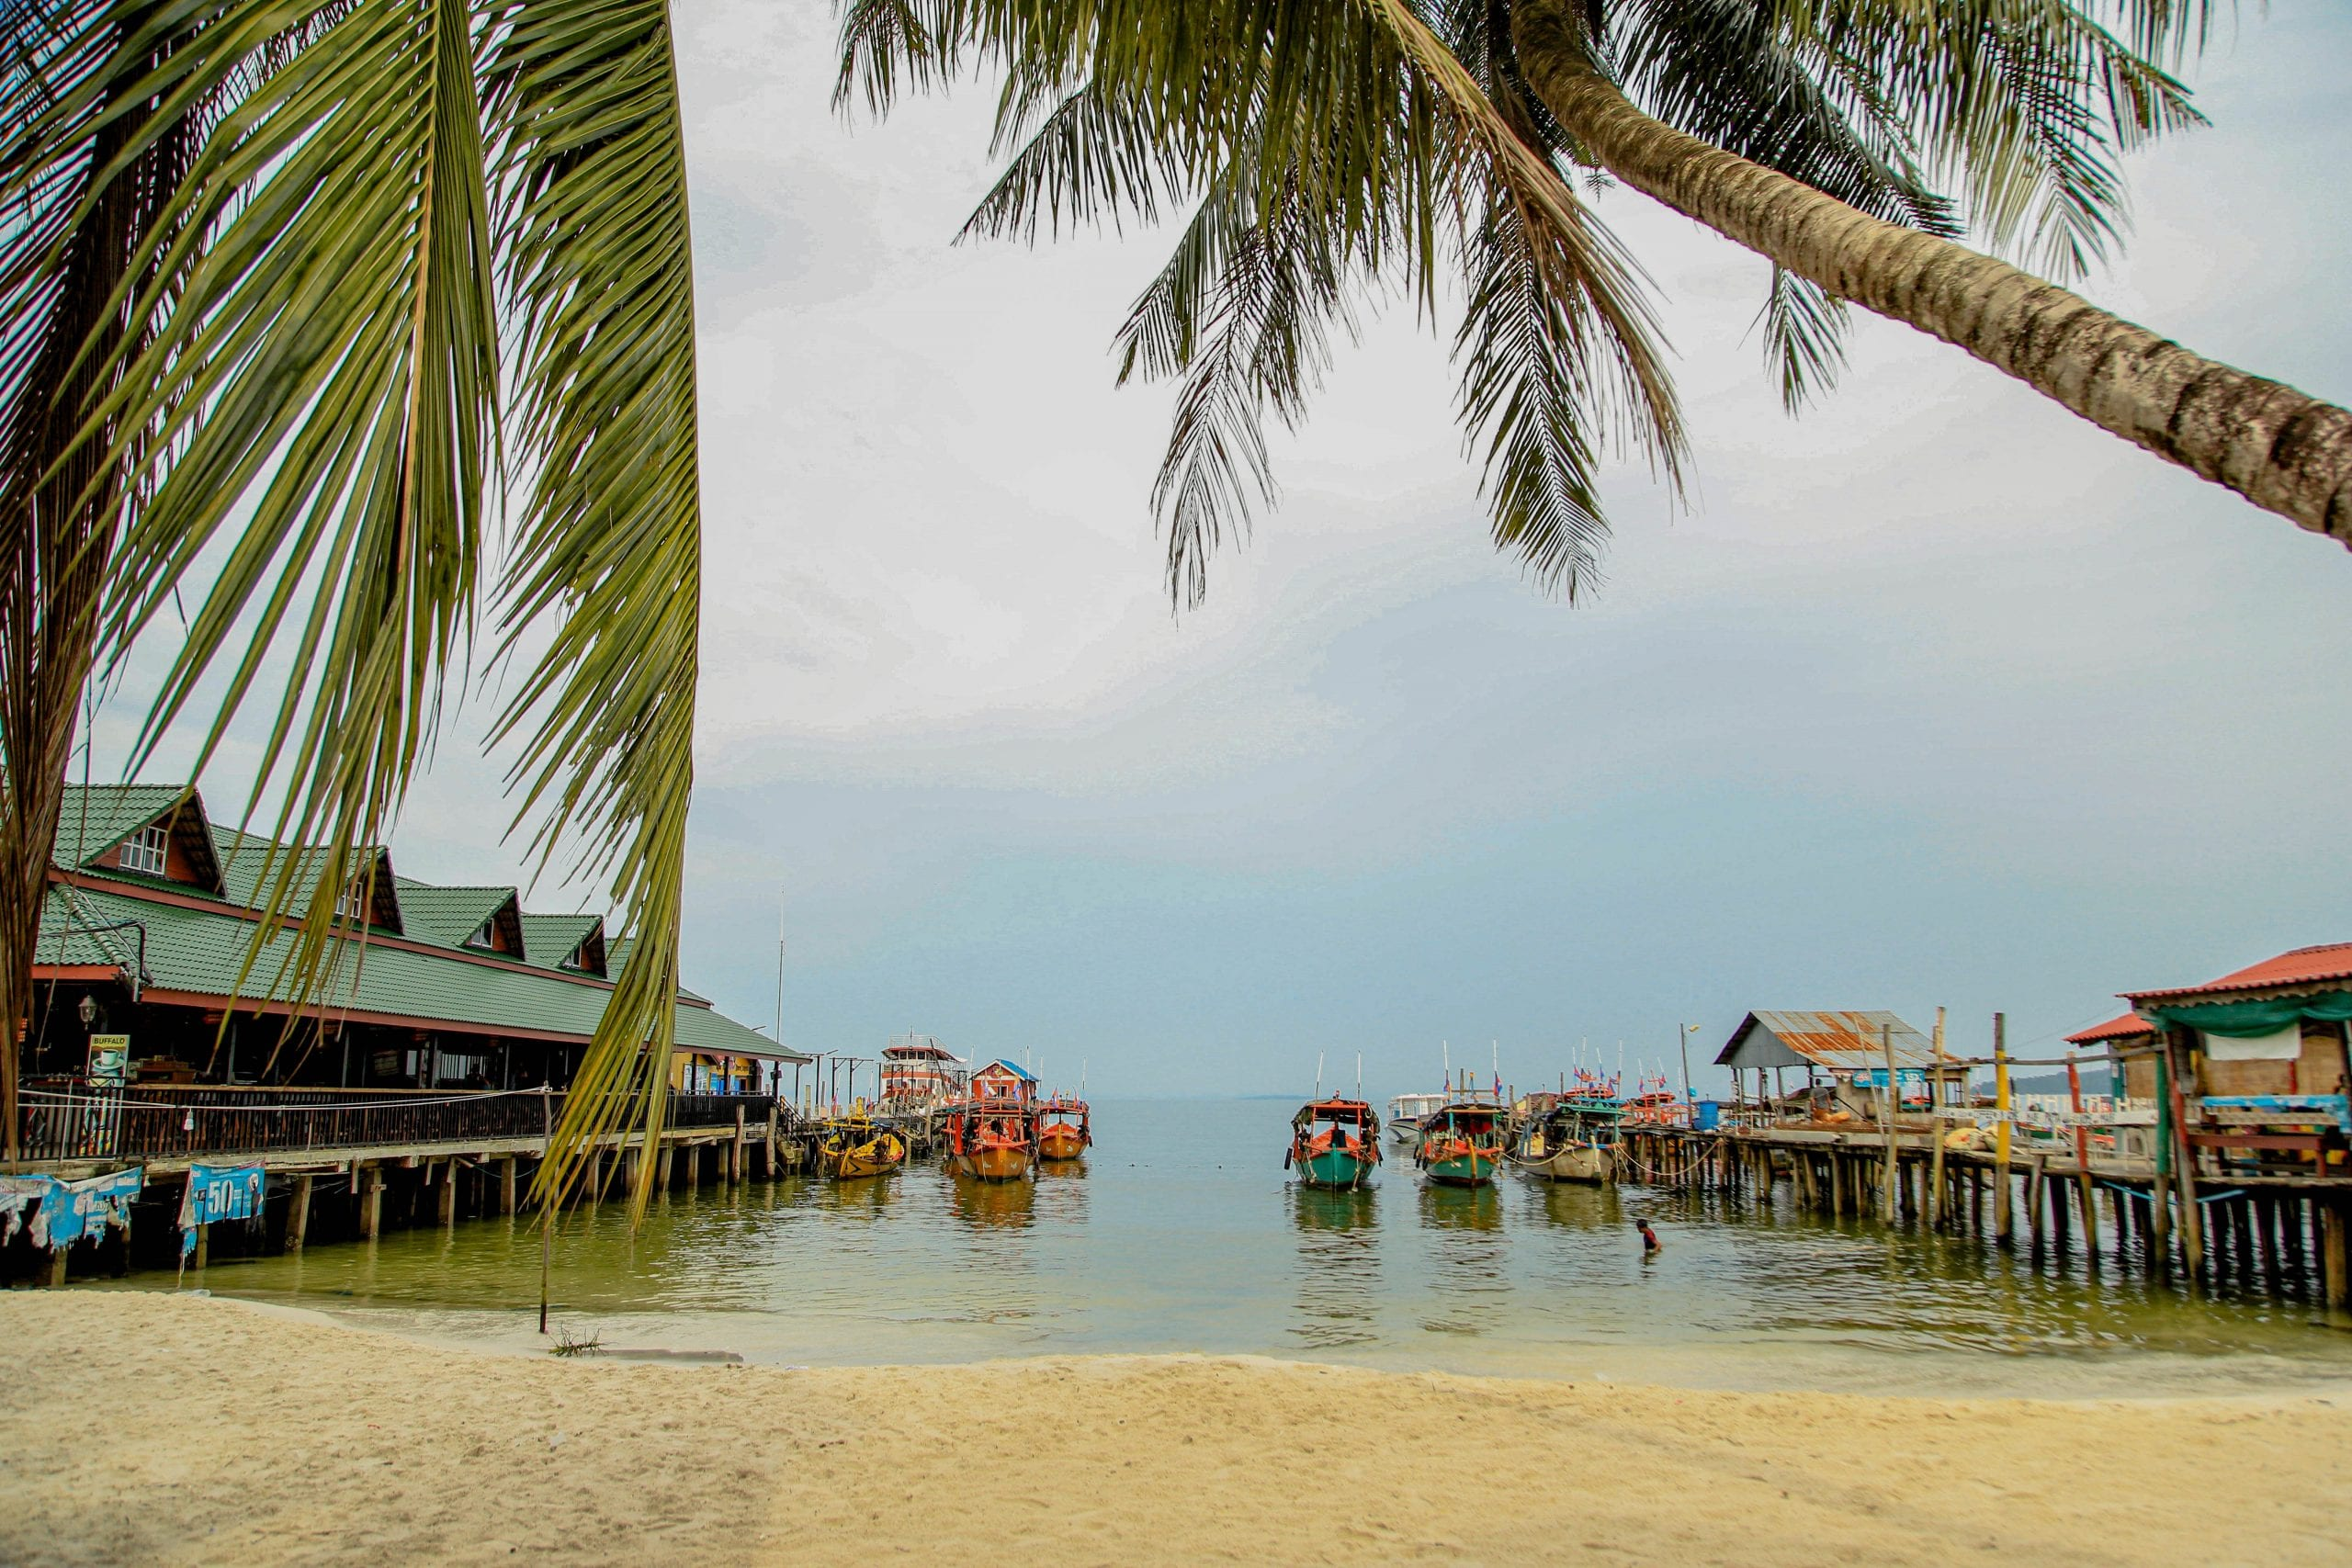 Beach, palm trees and boat on the ocean on Koh Rong, Cambodia